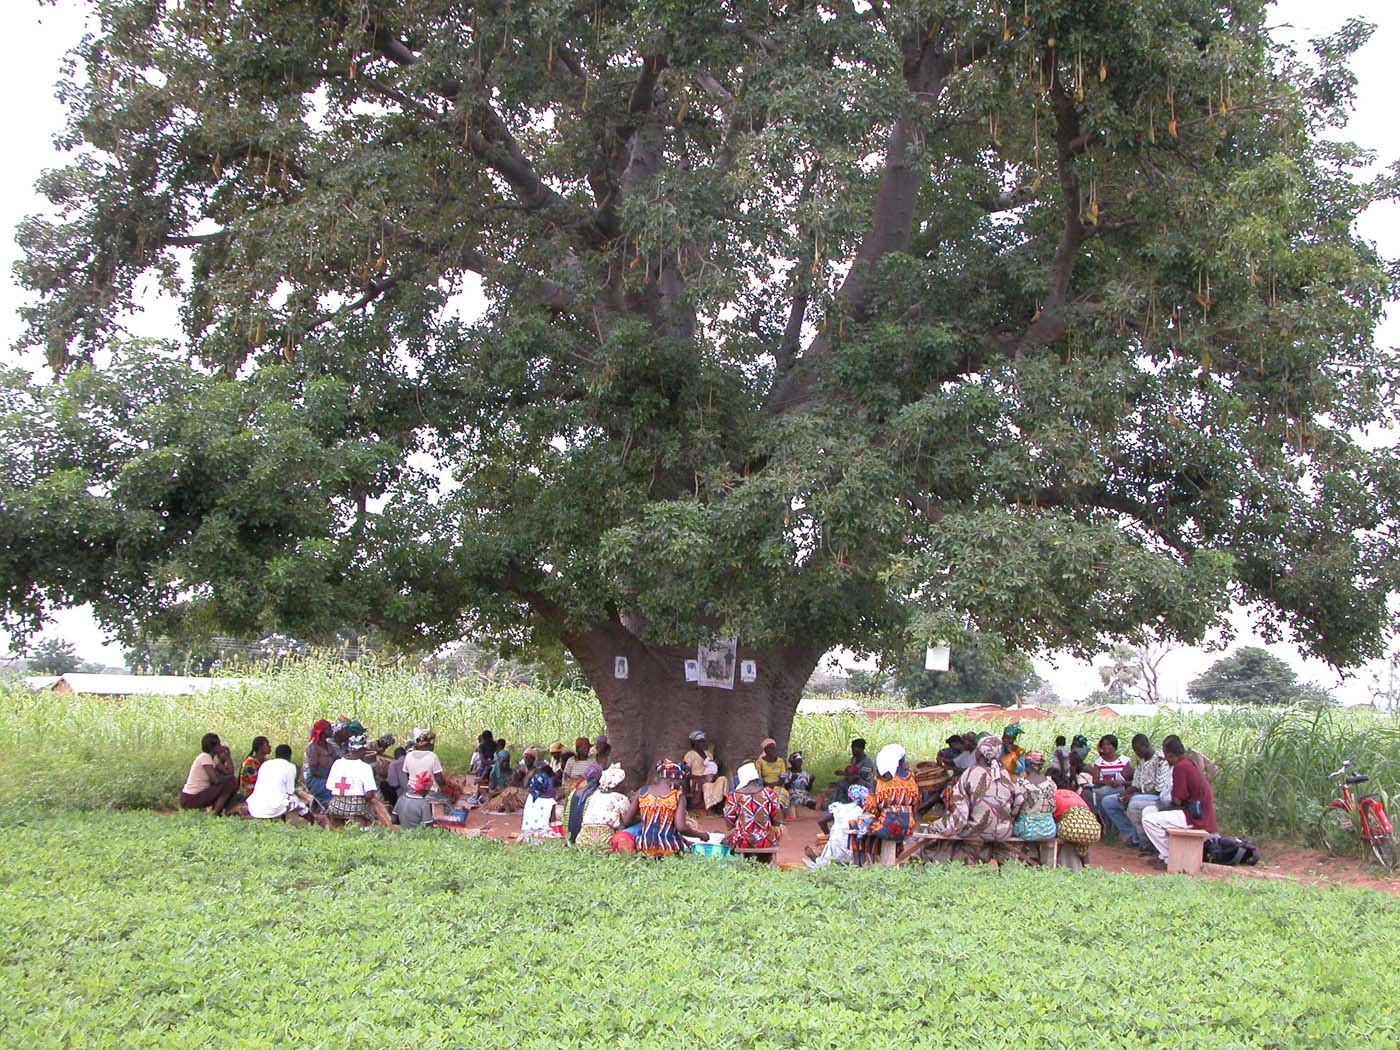 Baobab trees are a natural gathering place